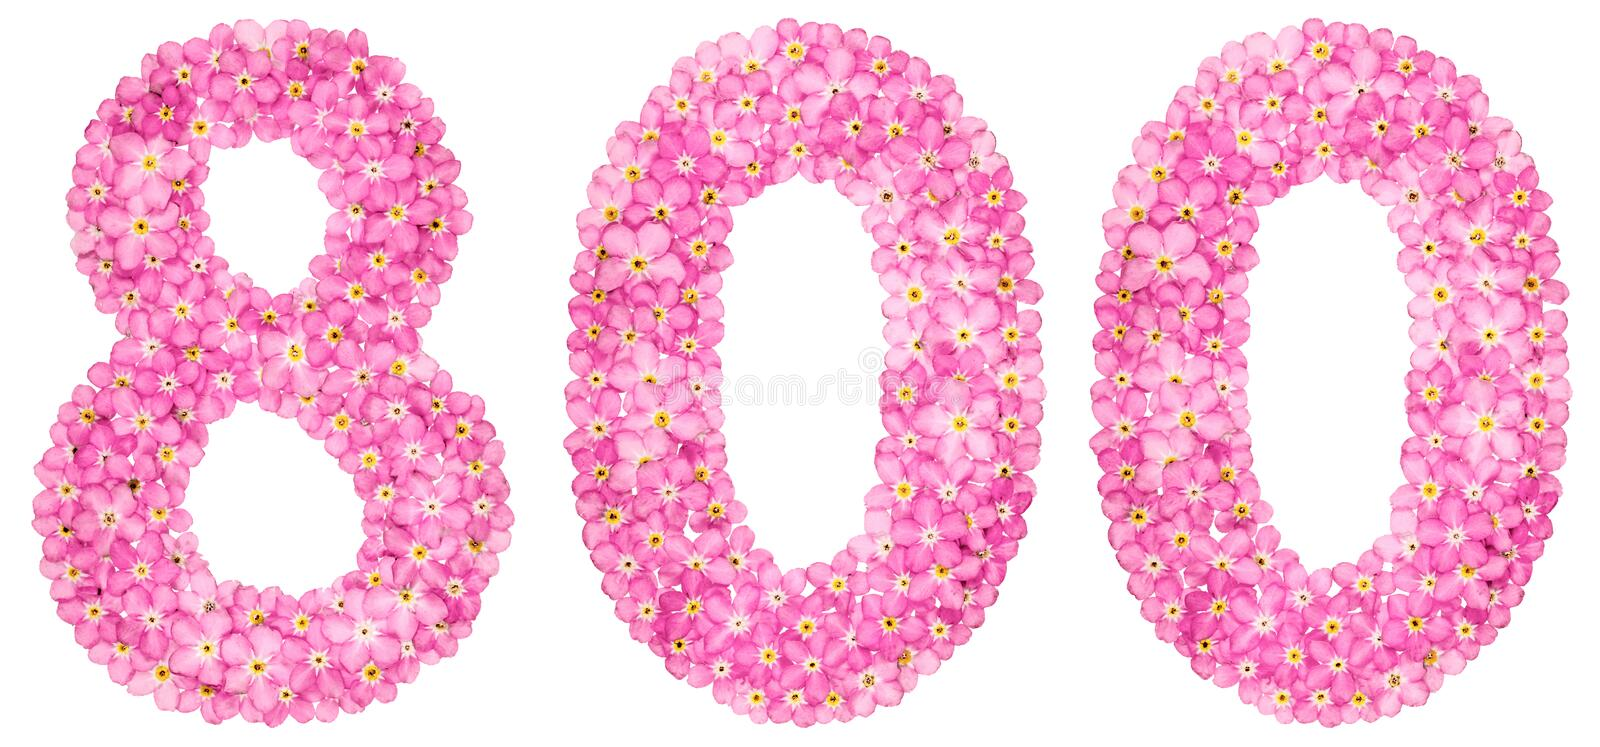 Arabic numeral 800, eight hundred, from pink forget-me-not flowers, isolated on white background stock photography